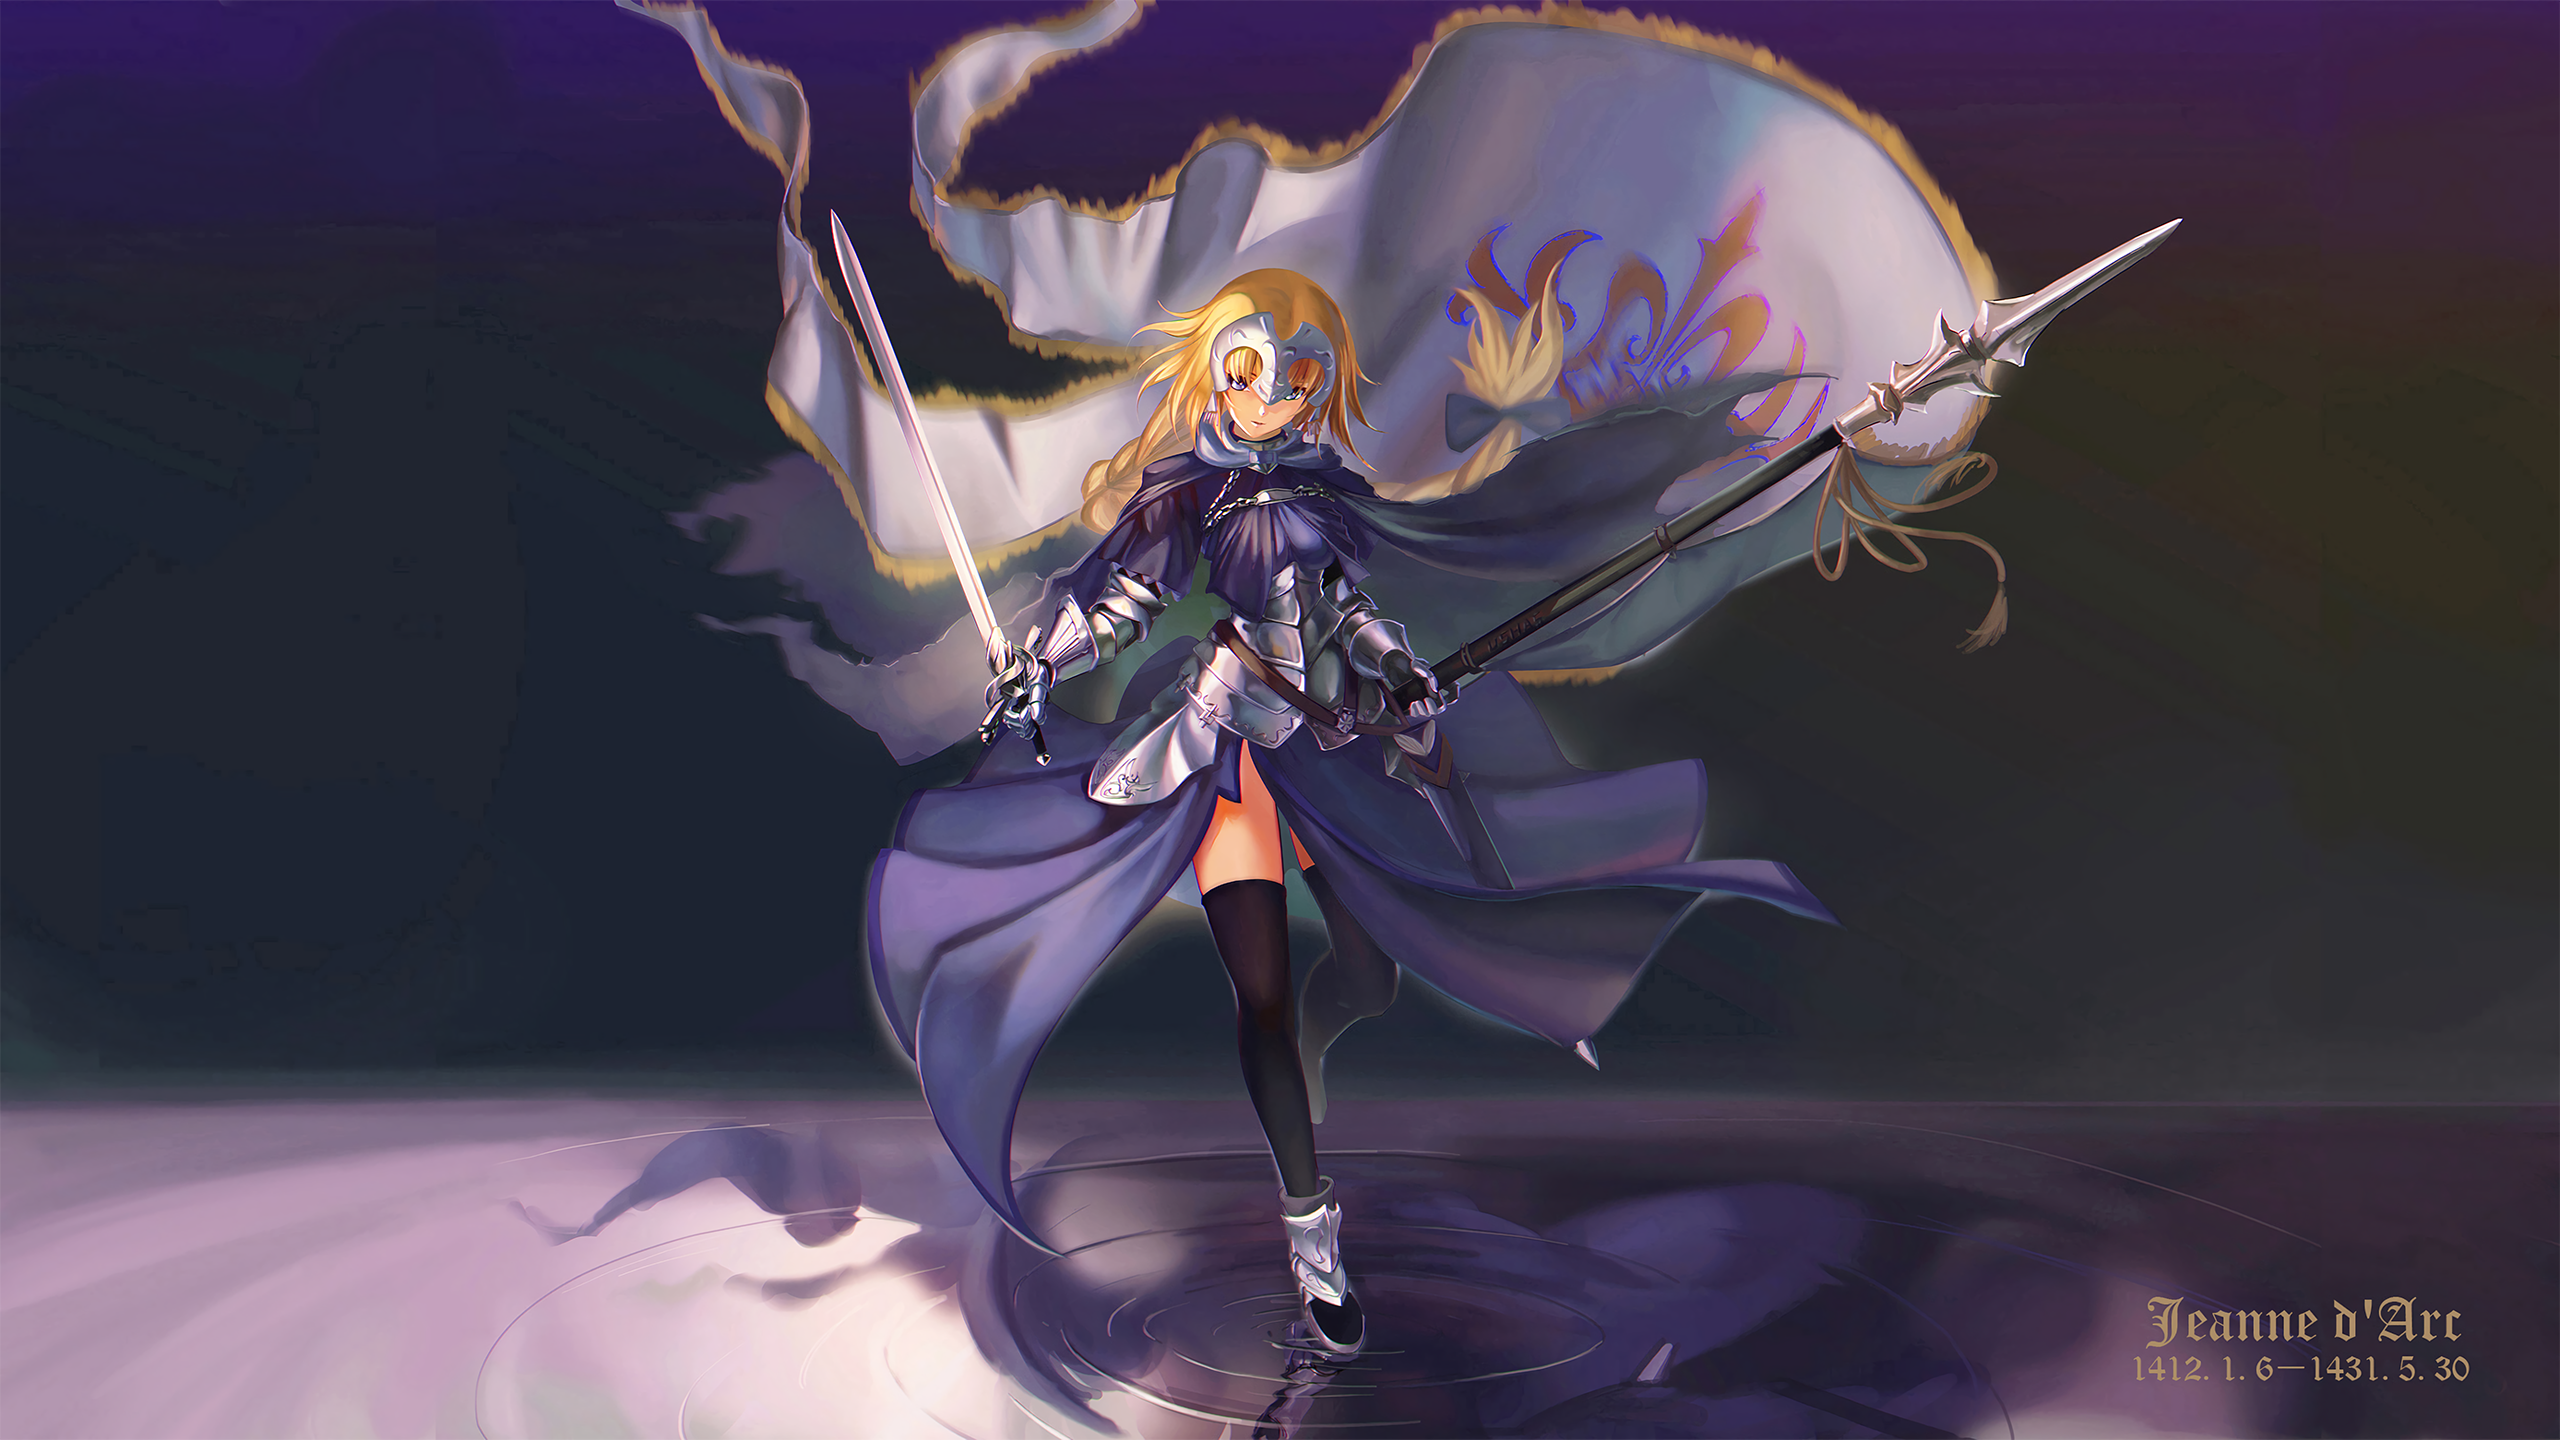 323 Jeanne D Arc Fate Series Hd Wallpapers Background Images